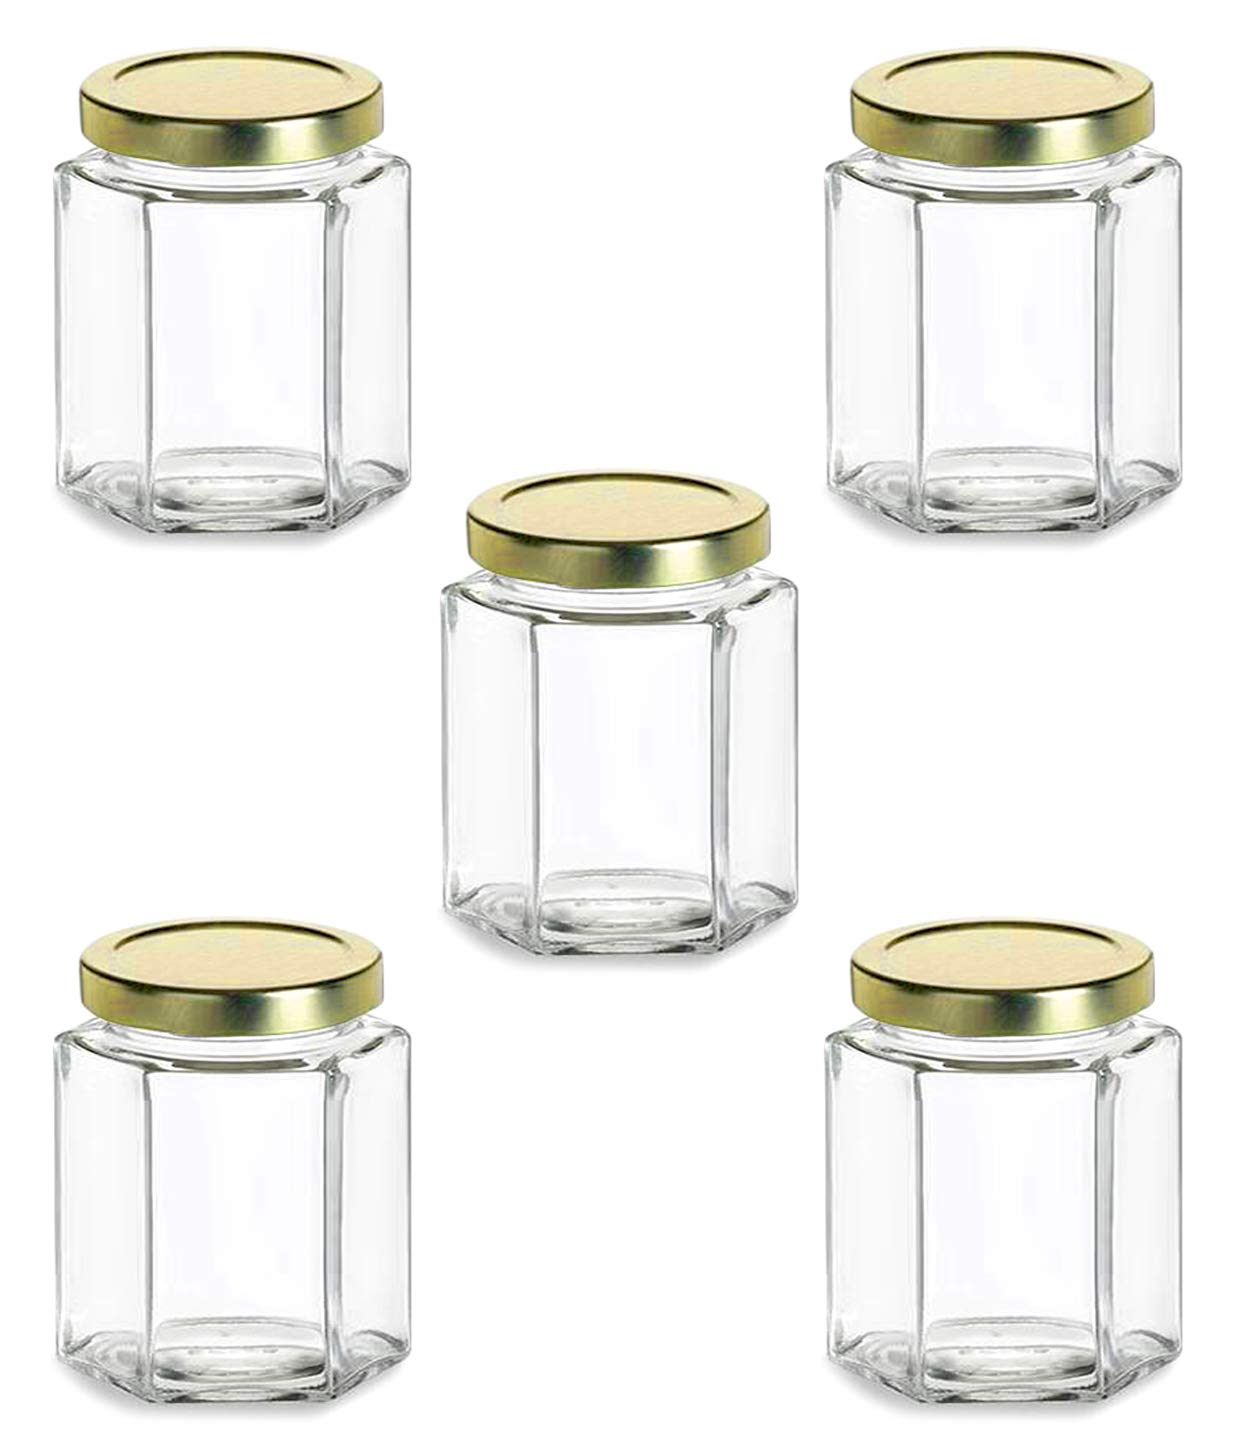 Superbazaar Glass Jar 200 Gram Capacity With Metal Gold Color Rust Proof Air Tight Cap,(set Of 5 Pcs)